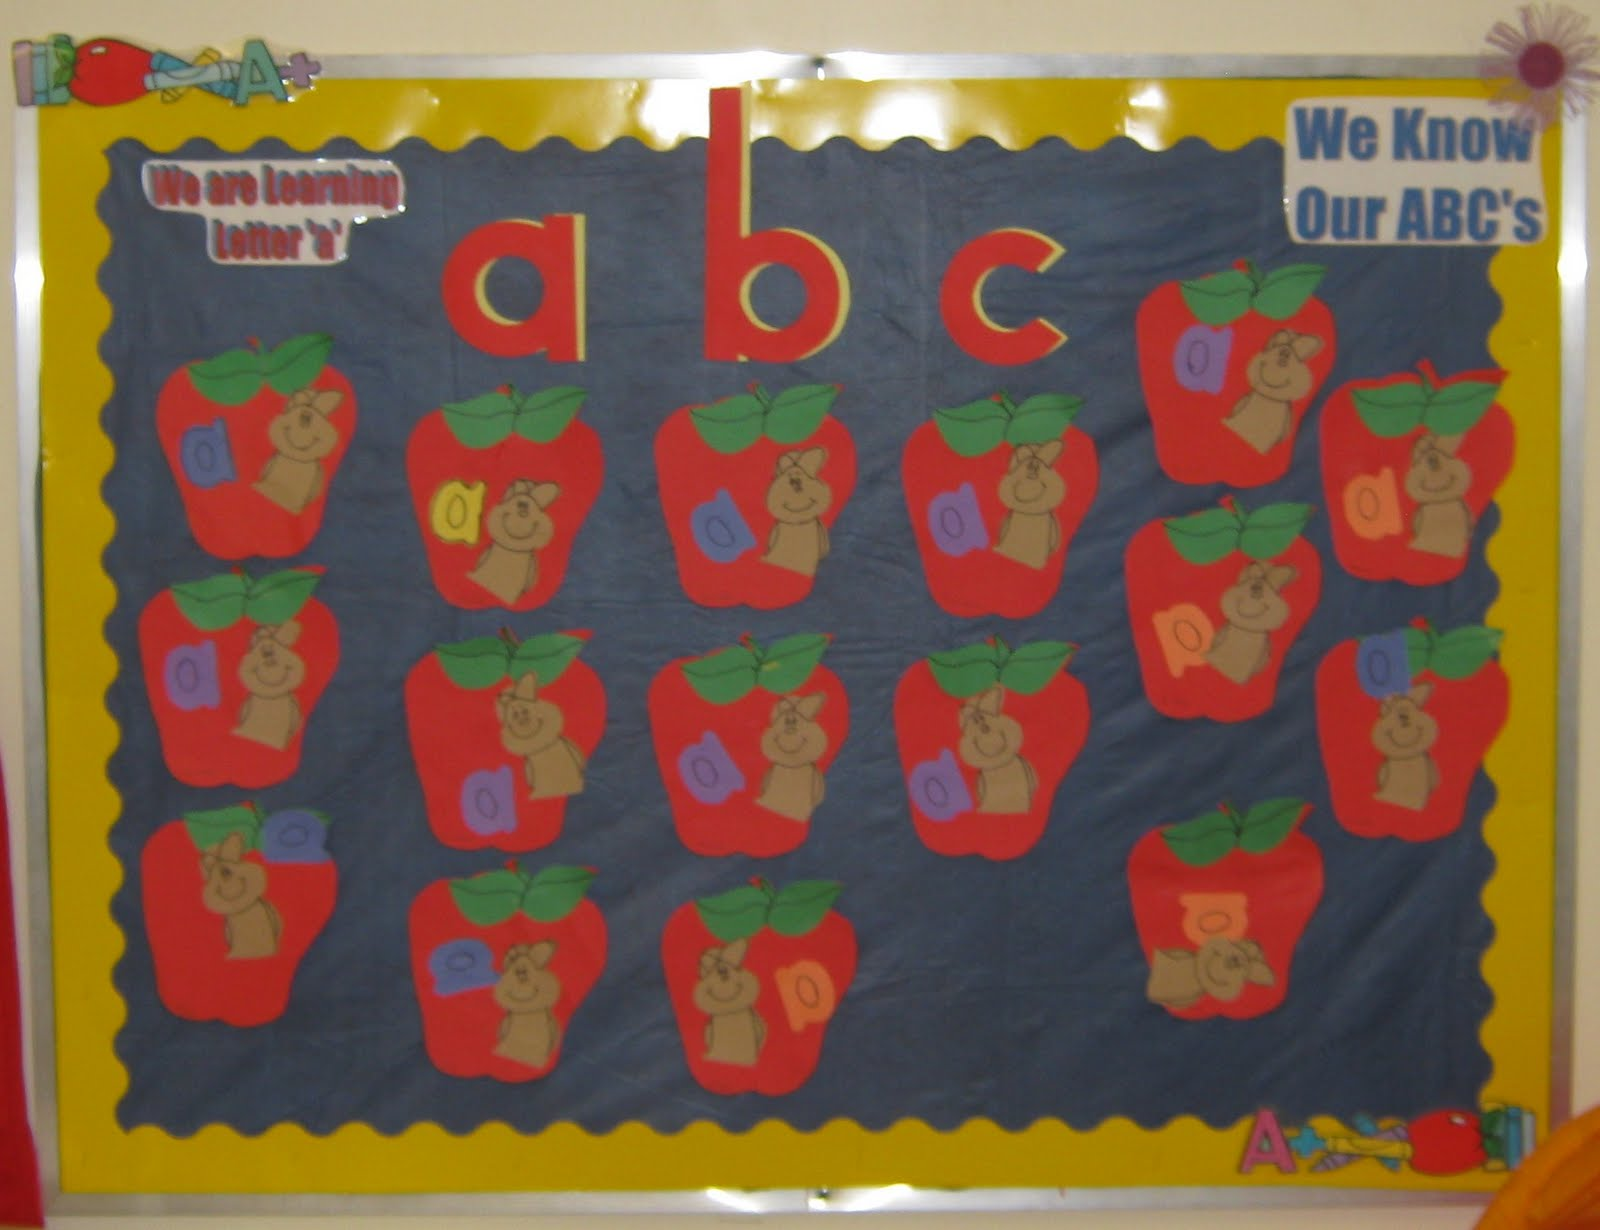 September Bulletin Board Ideas http://kreativeactivities.blogspot.com/2011/09/september-bulletin-boards.html